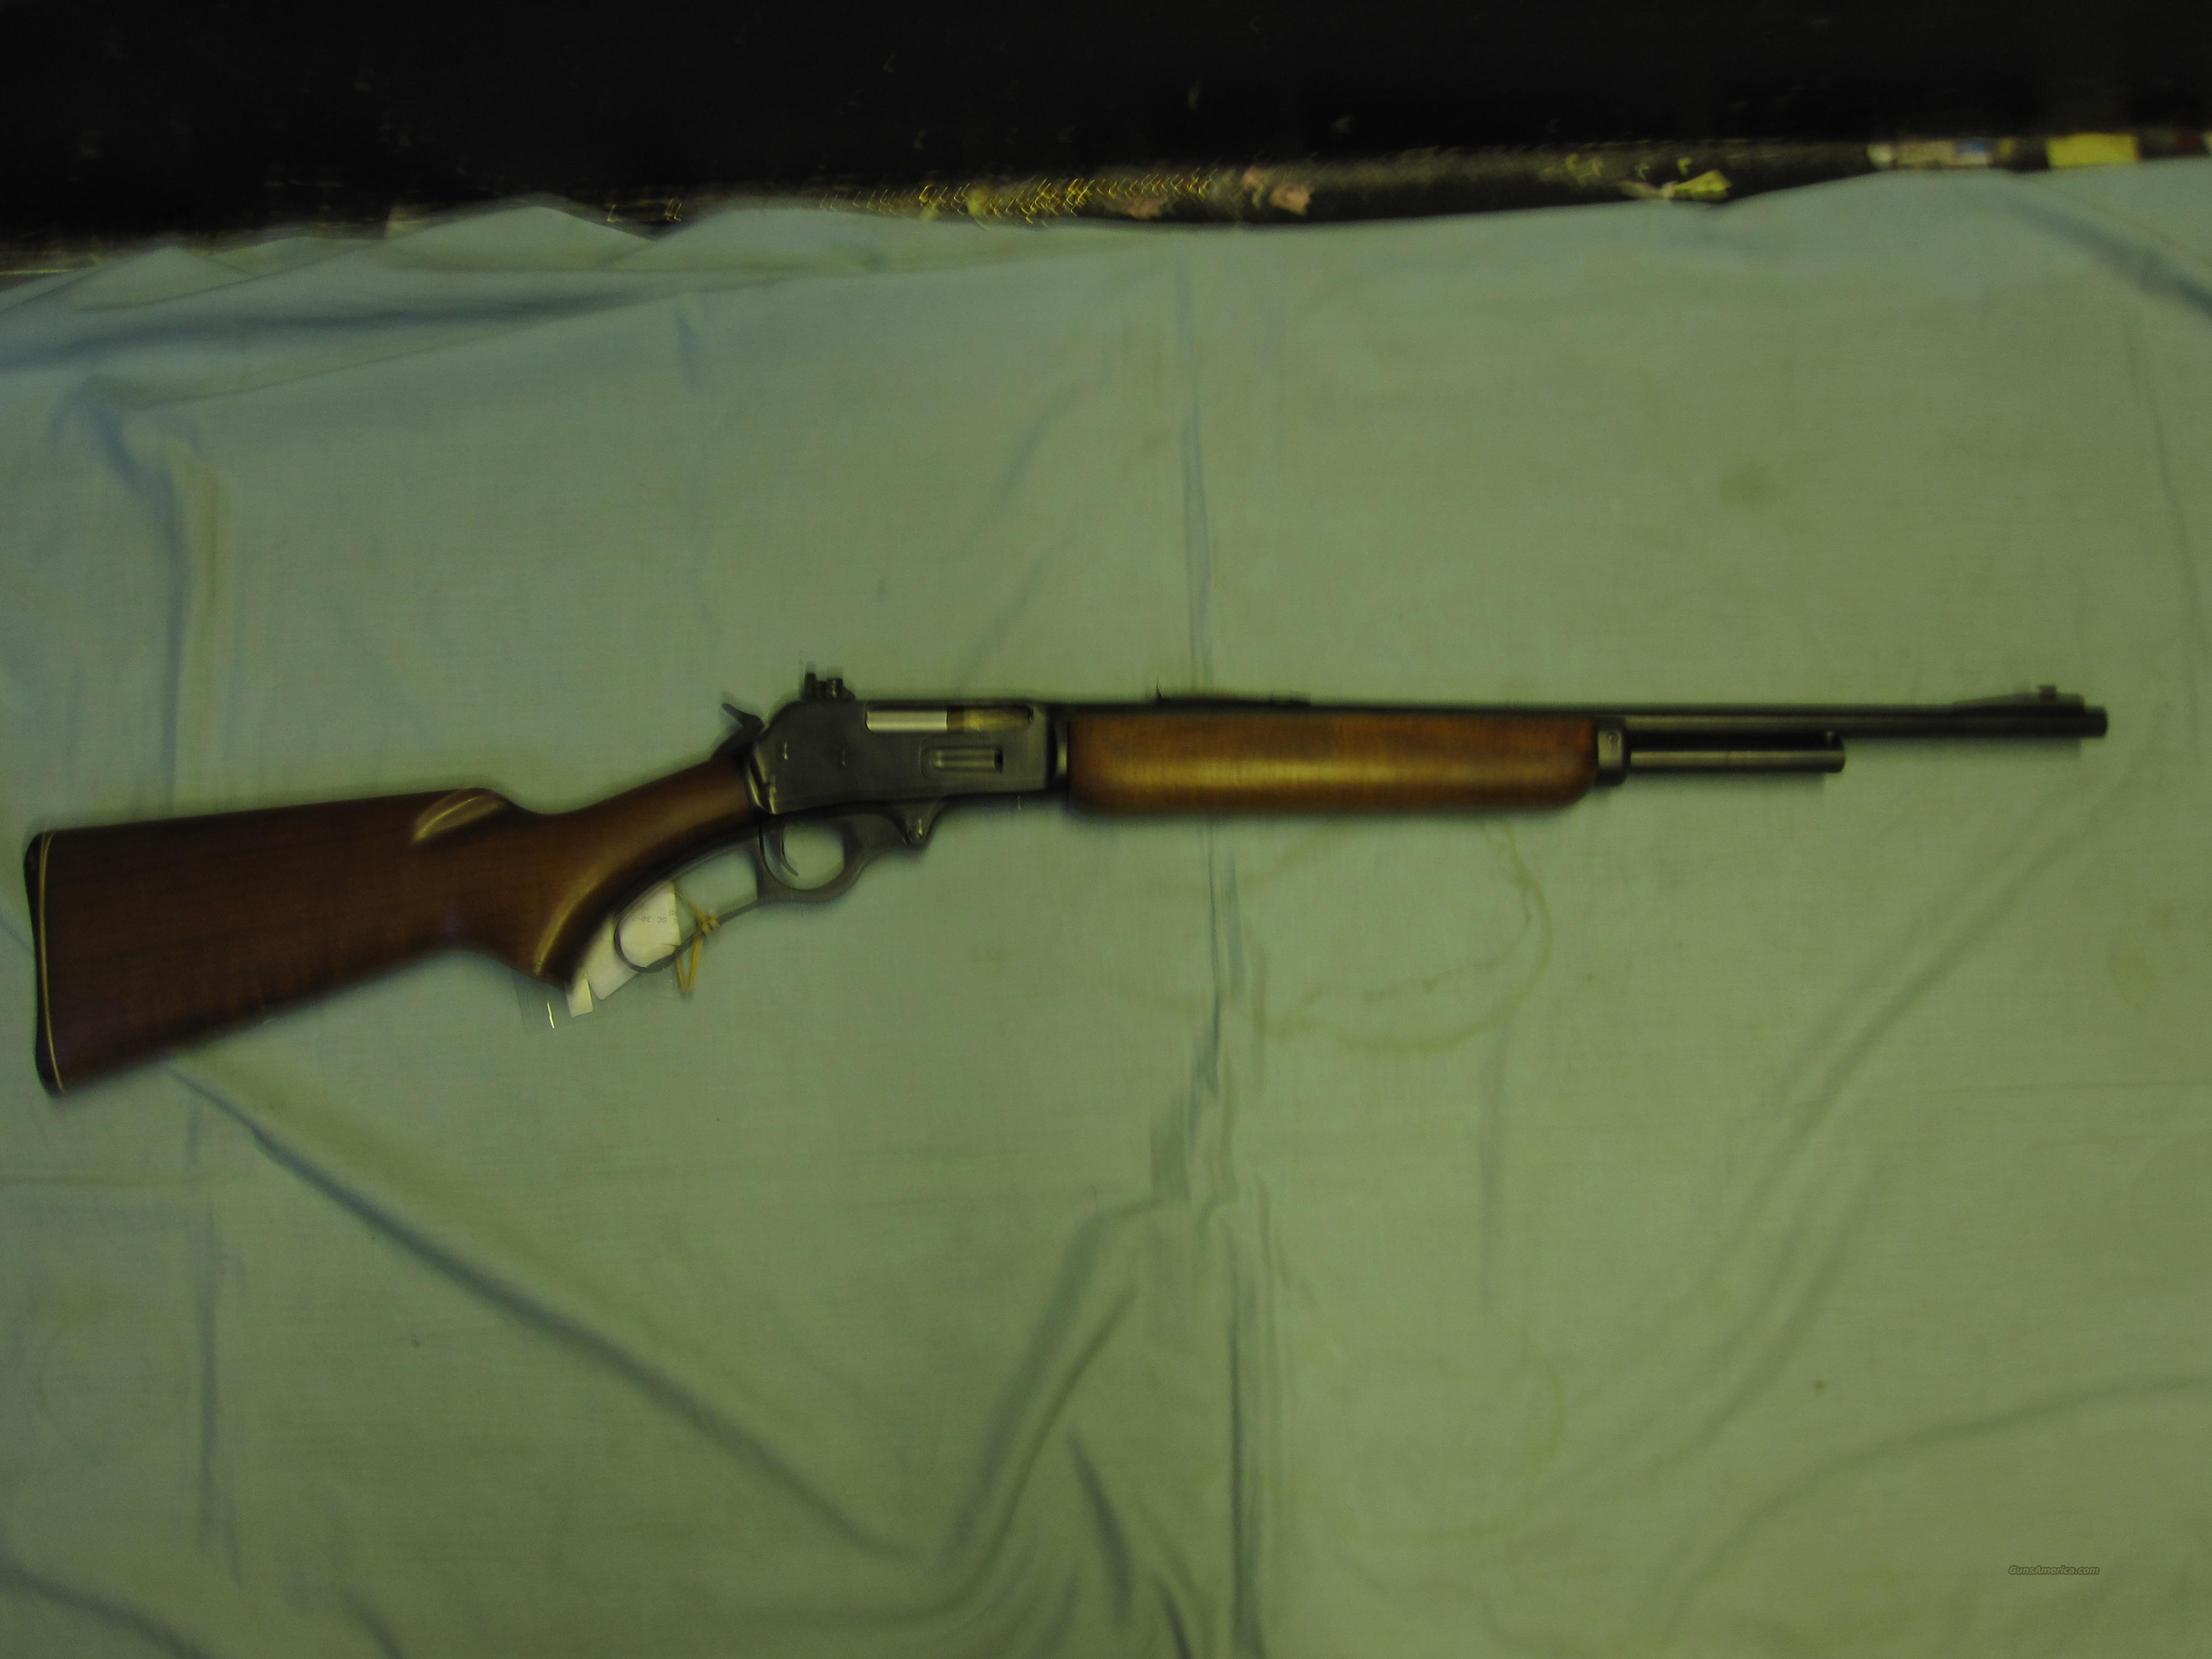 Marlin mod# 336 s.c. 30-30 cal lever action rifle  Guns > Rifles > Marlin Rifles > Modern > Lever Action